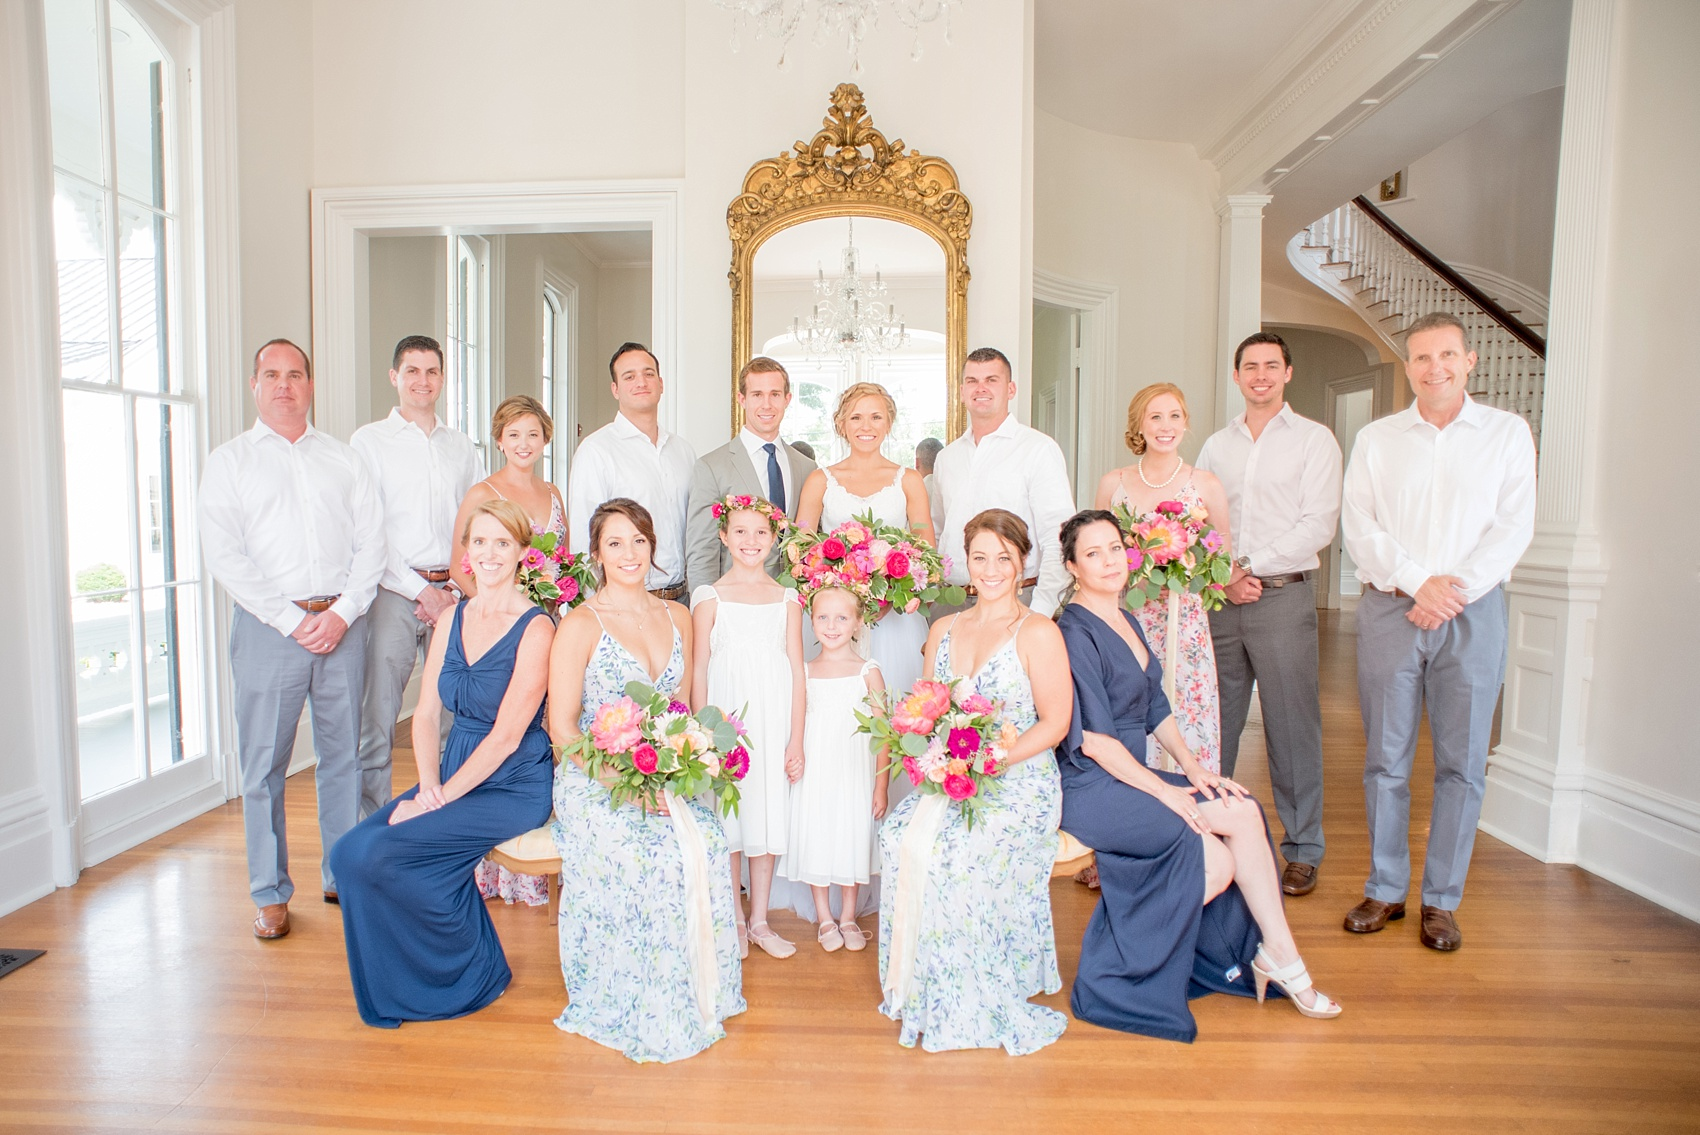 Mikkel Paige Photography wedding photos at The Merrimon-Wynne House in downtown Raleigh. A complete wedding party photo with bridesmaids in floral gowns and the groom's sisters in navy blue dresses.